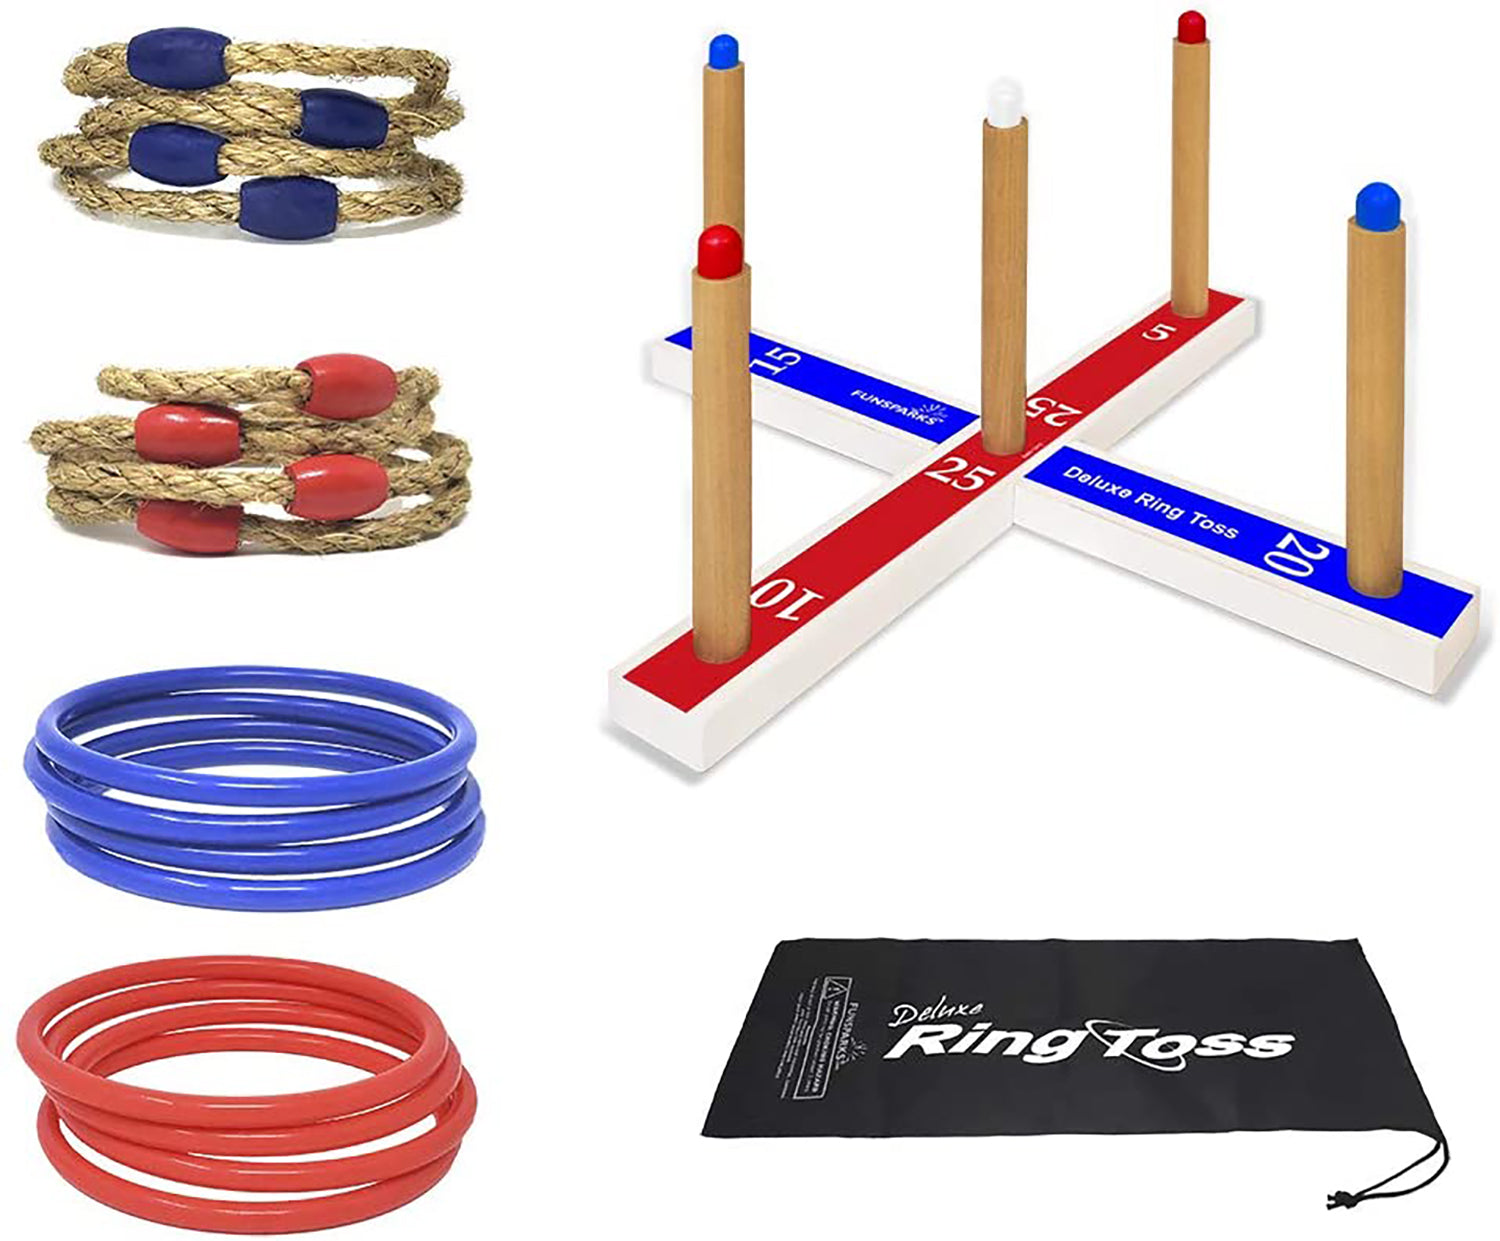 Ring Toss game set by Funsparks coemes with 16 rings, 8 rope and 8 plastic, and a carry bag